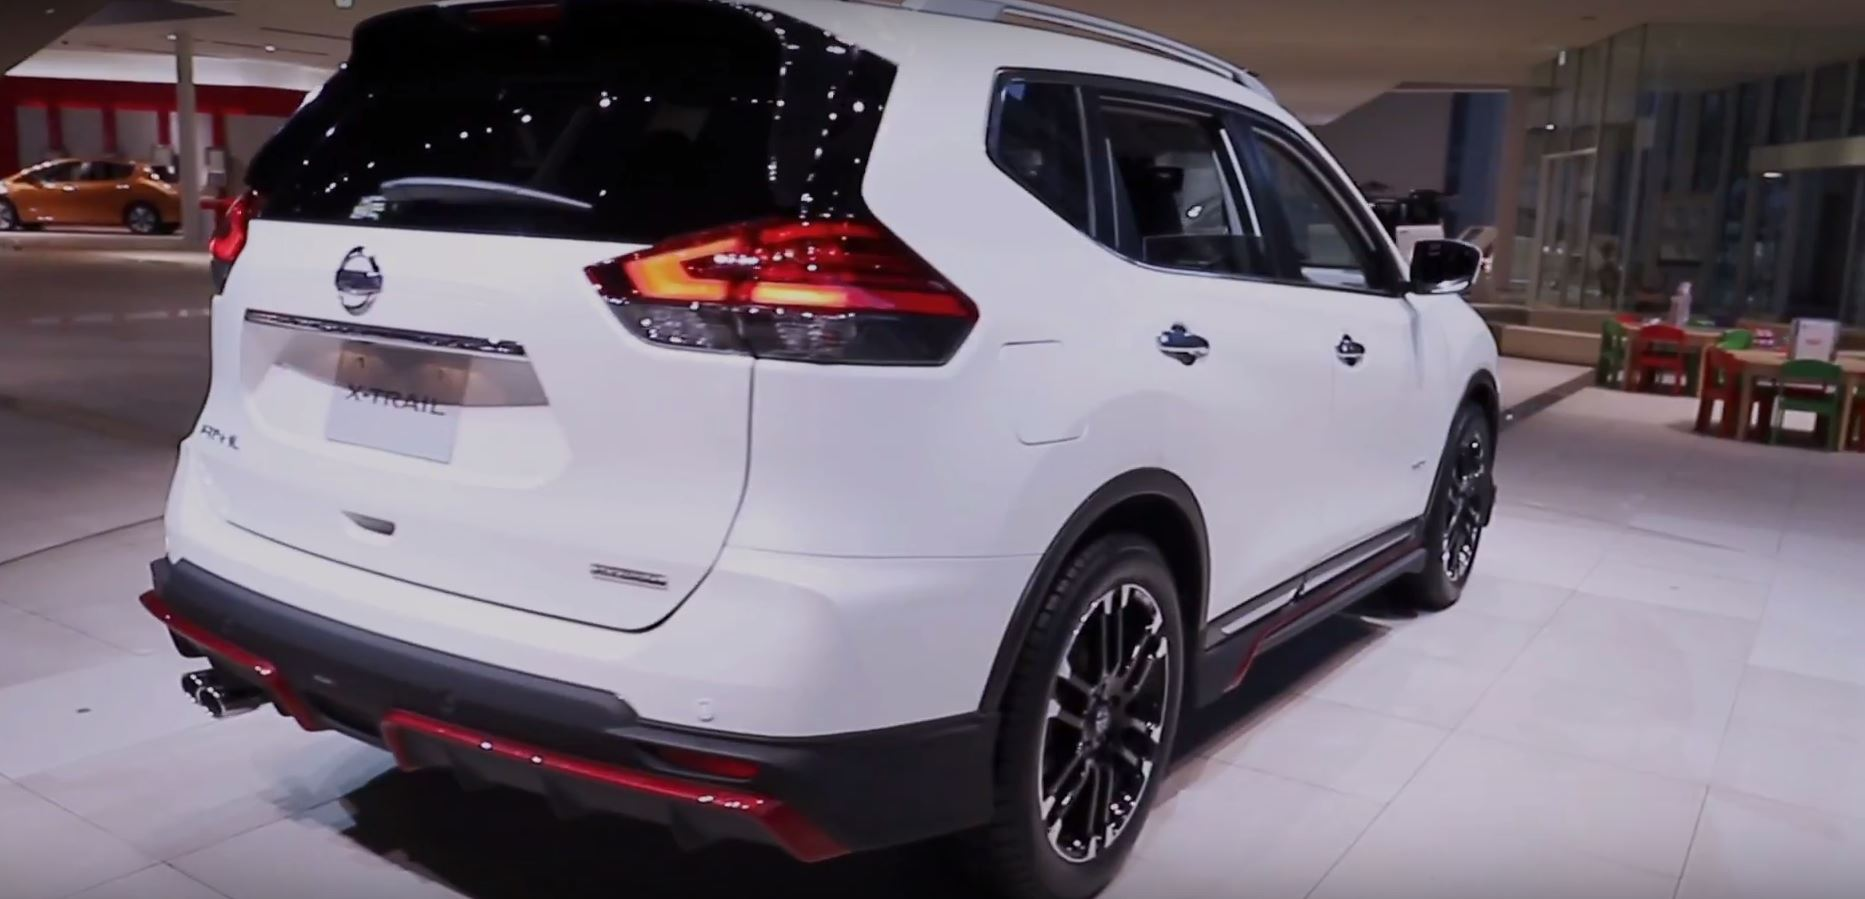 A furthermore Nissan Rogue Gets Nismo Body Kit In Japan During X Trail Mid Life Facelift further Fds further Lb A F C A A Beb Ec further B Ab Ce Z. on ford n series tractor